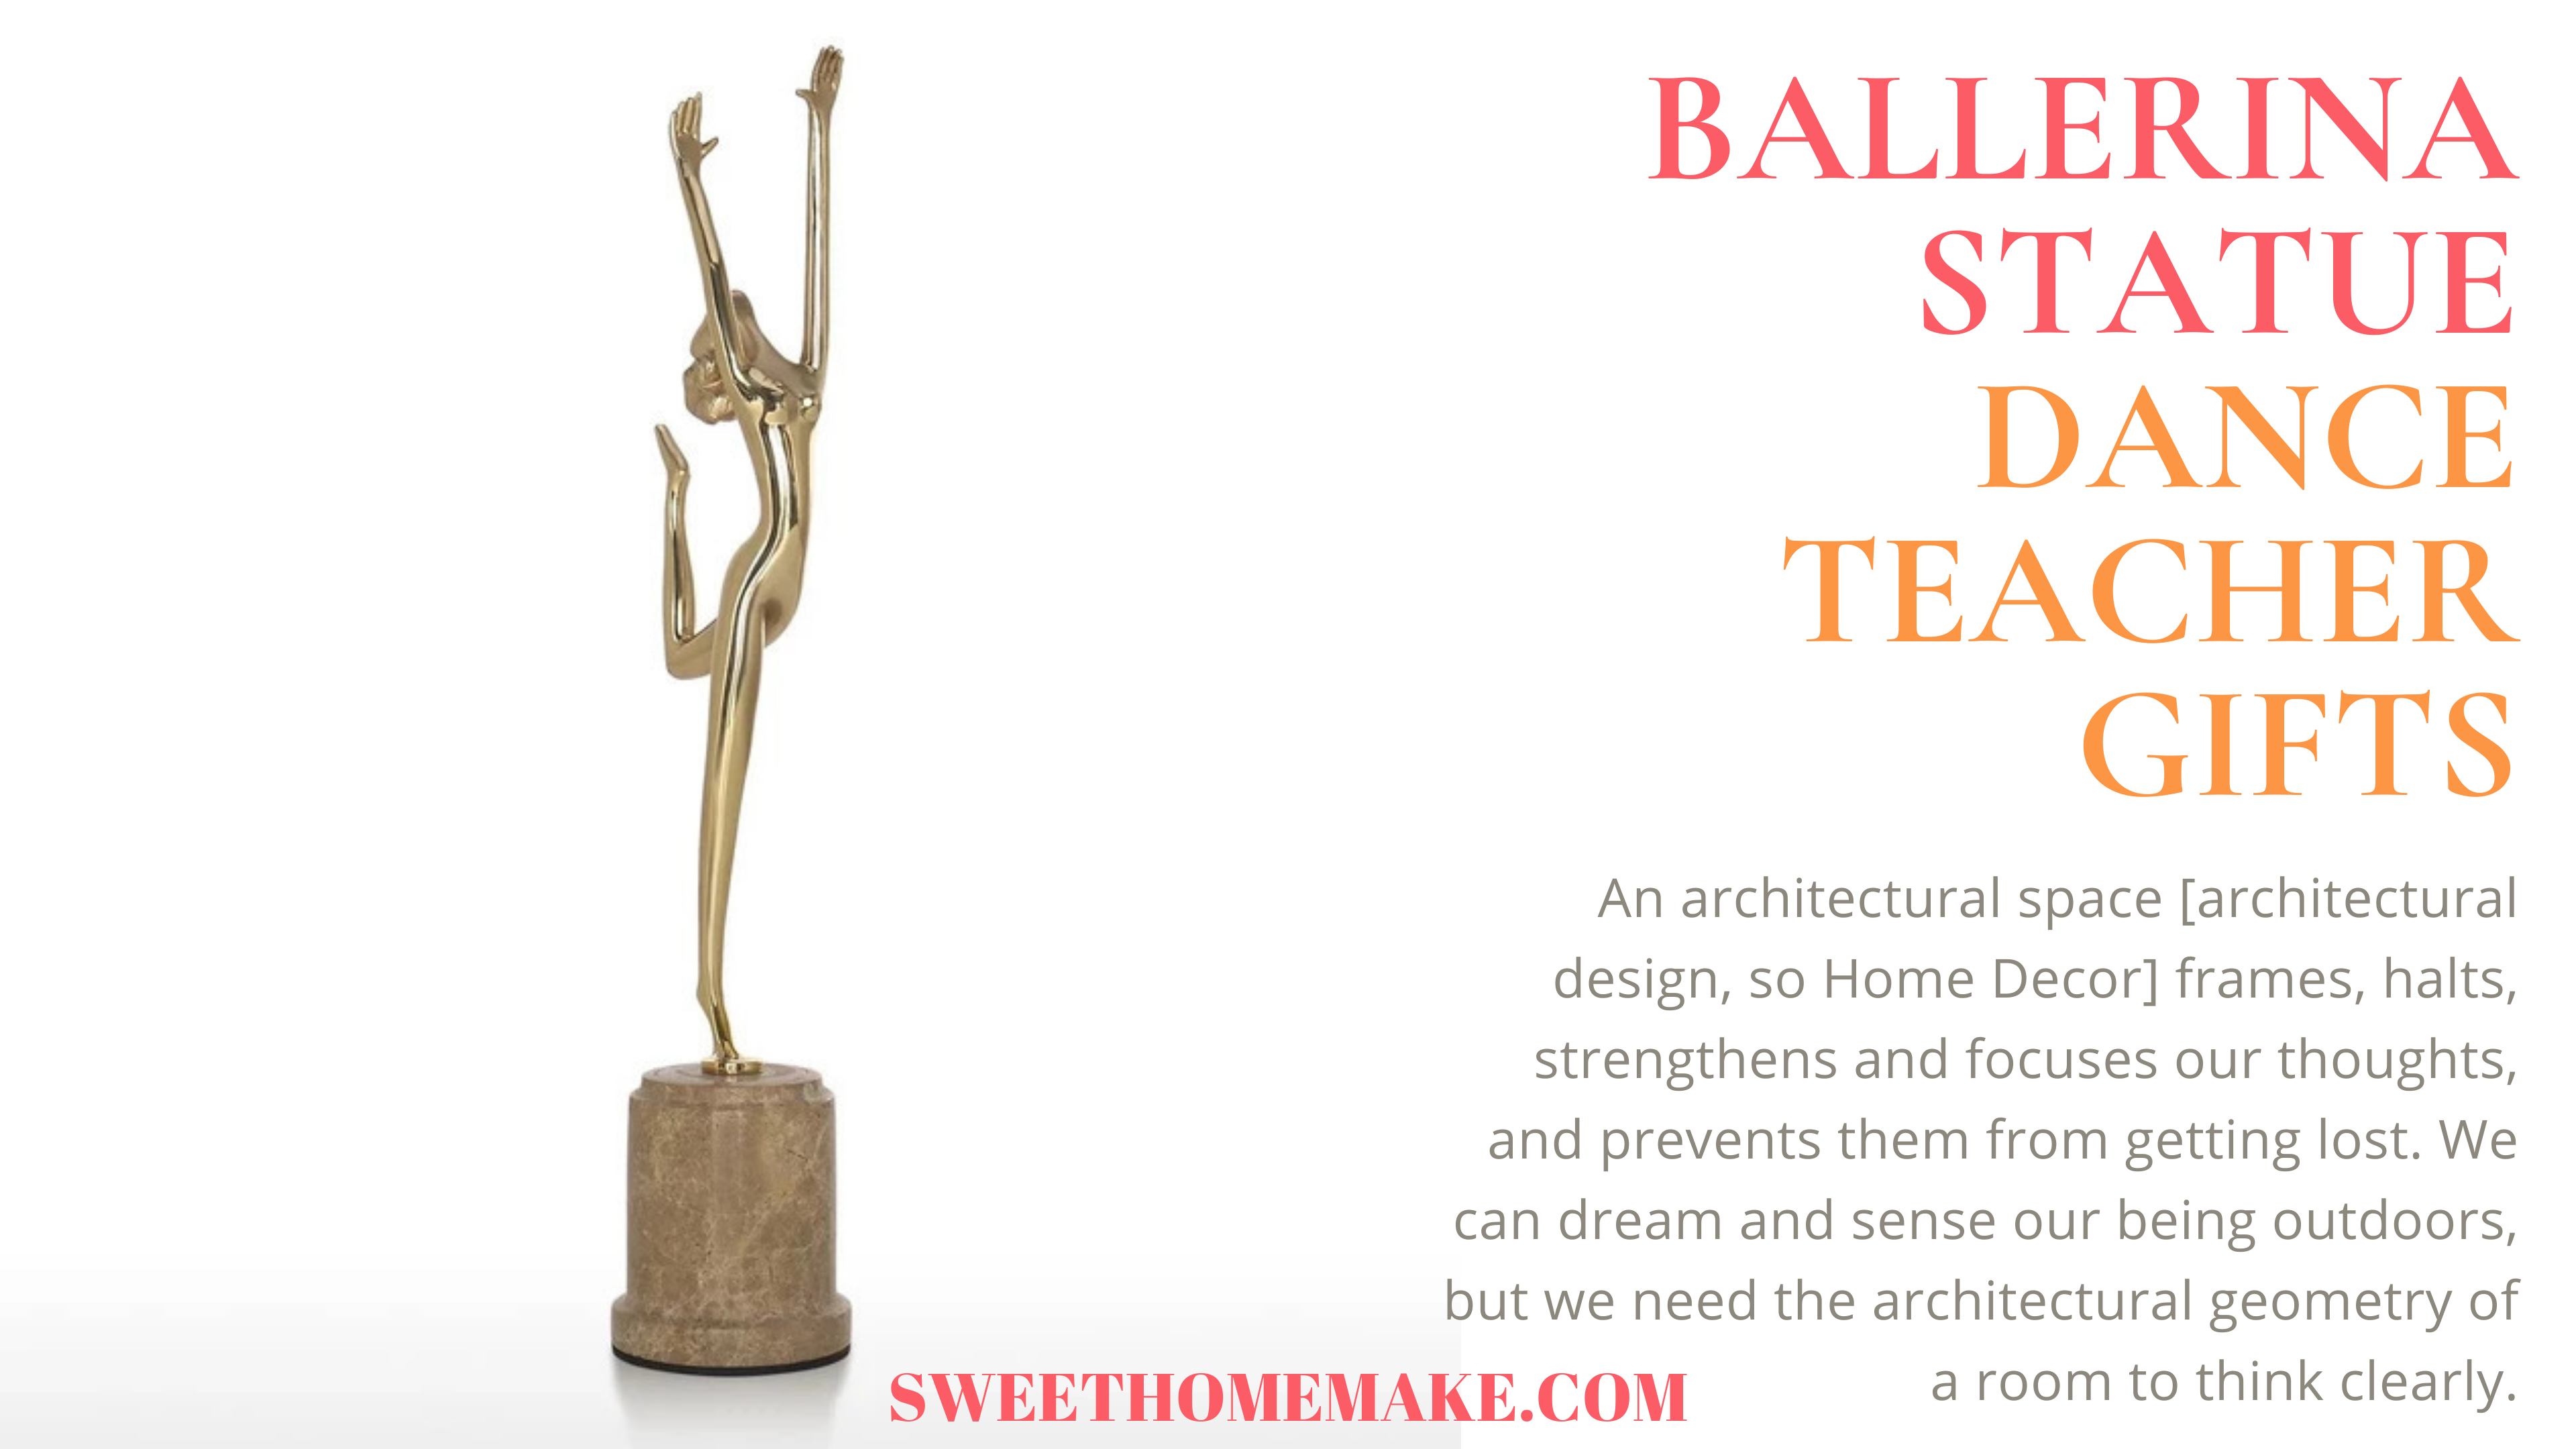 Dance Teacher Gifts Ballet-Ballerina Statue Ornaments Decor